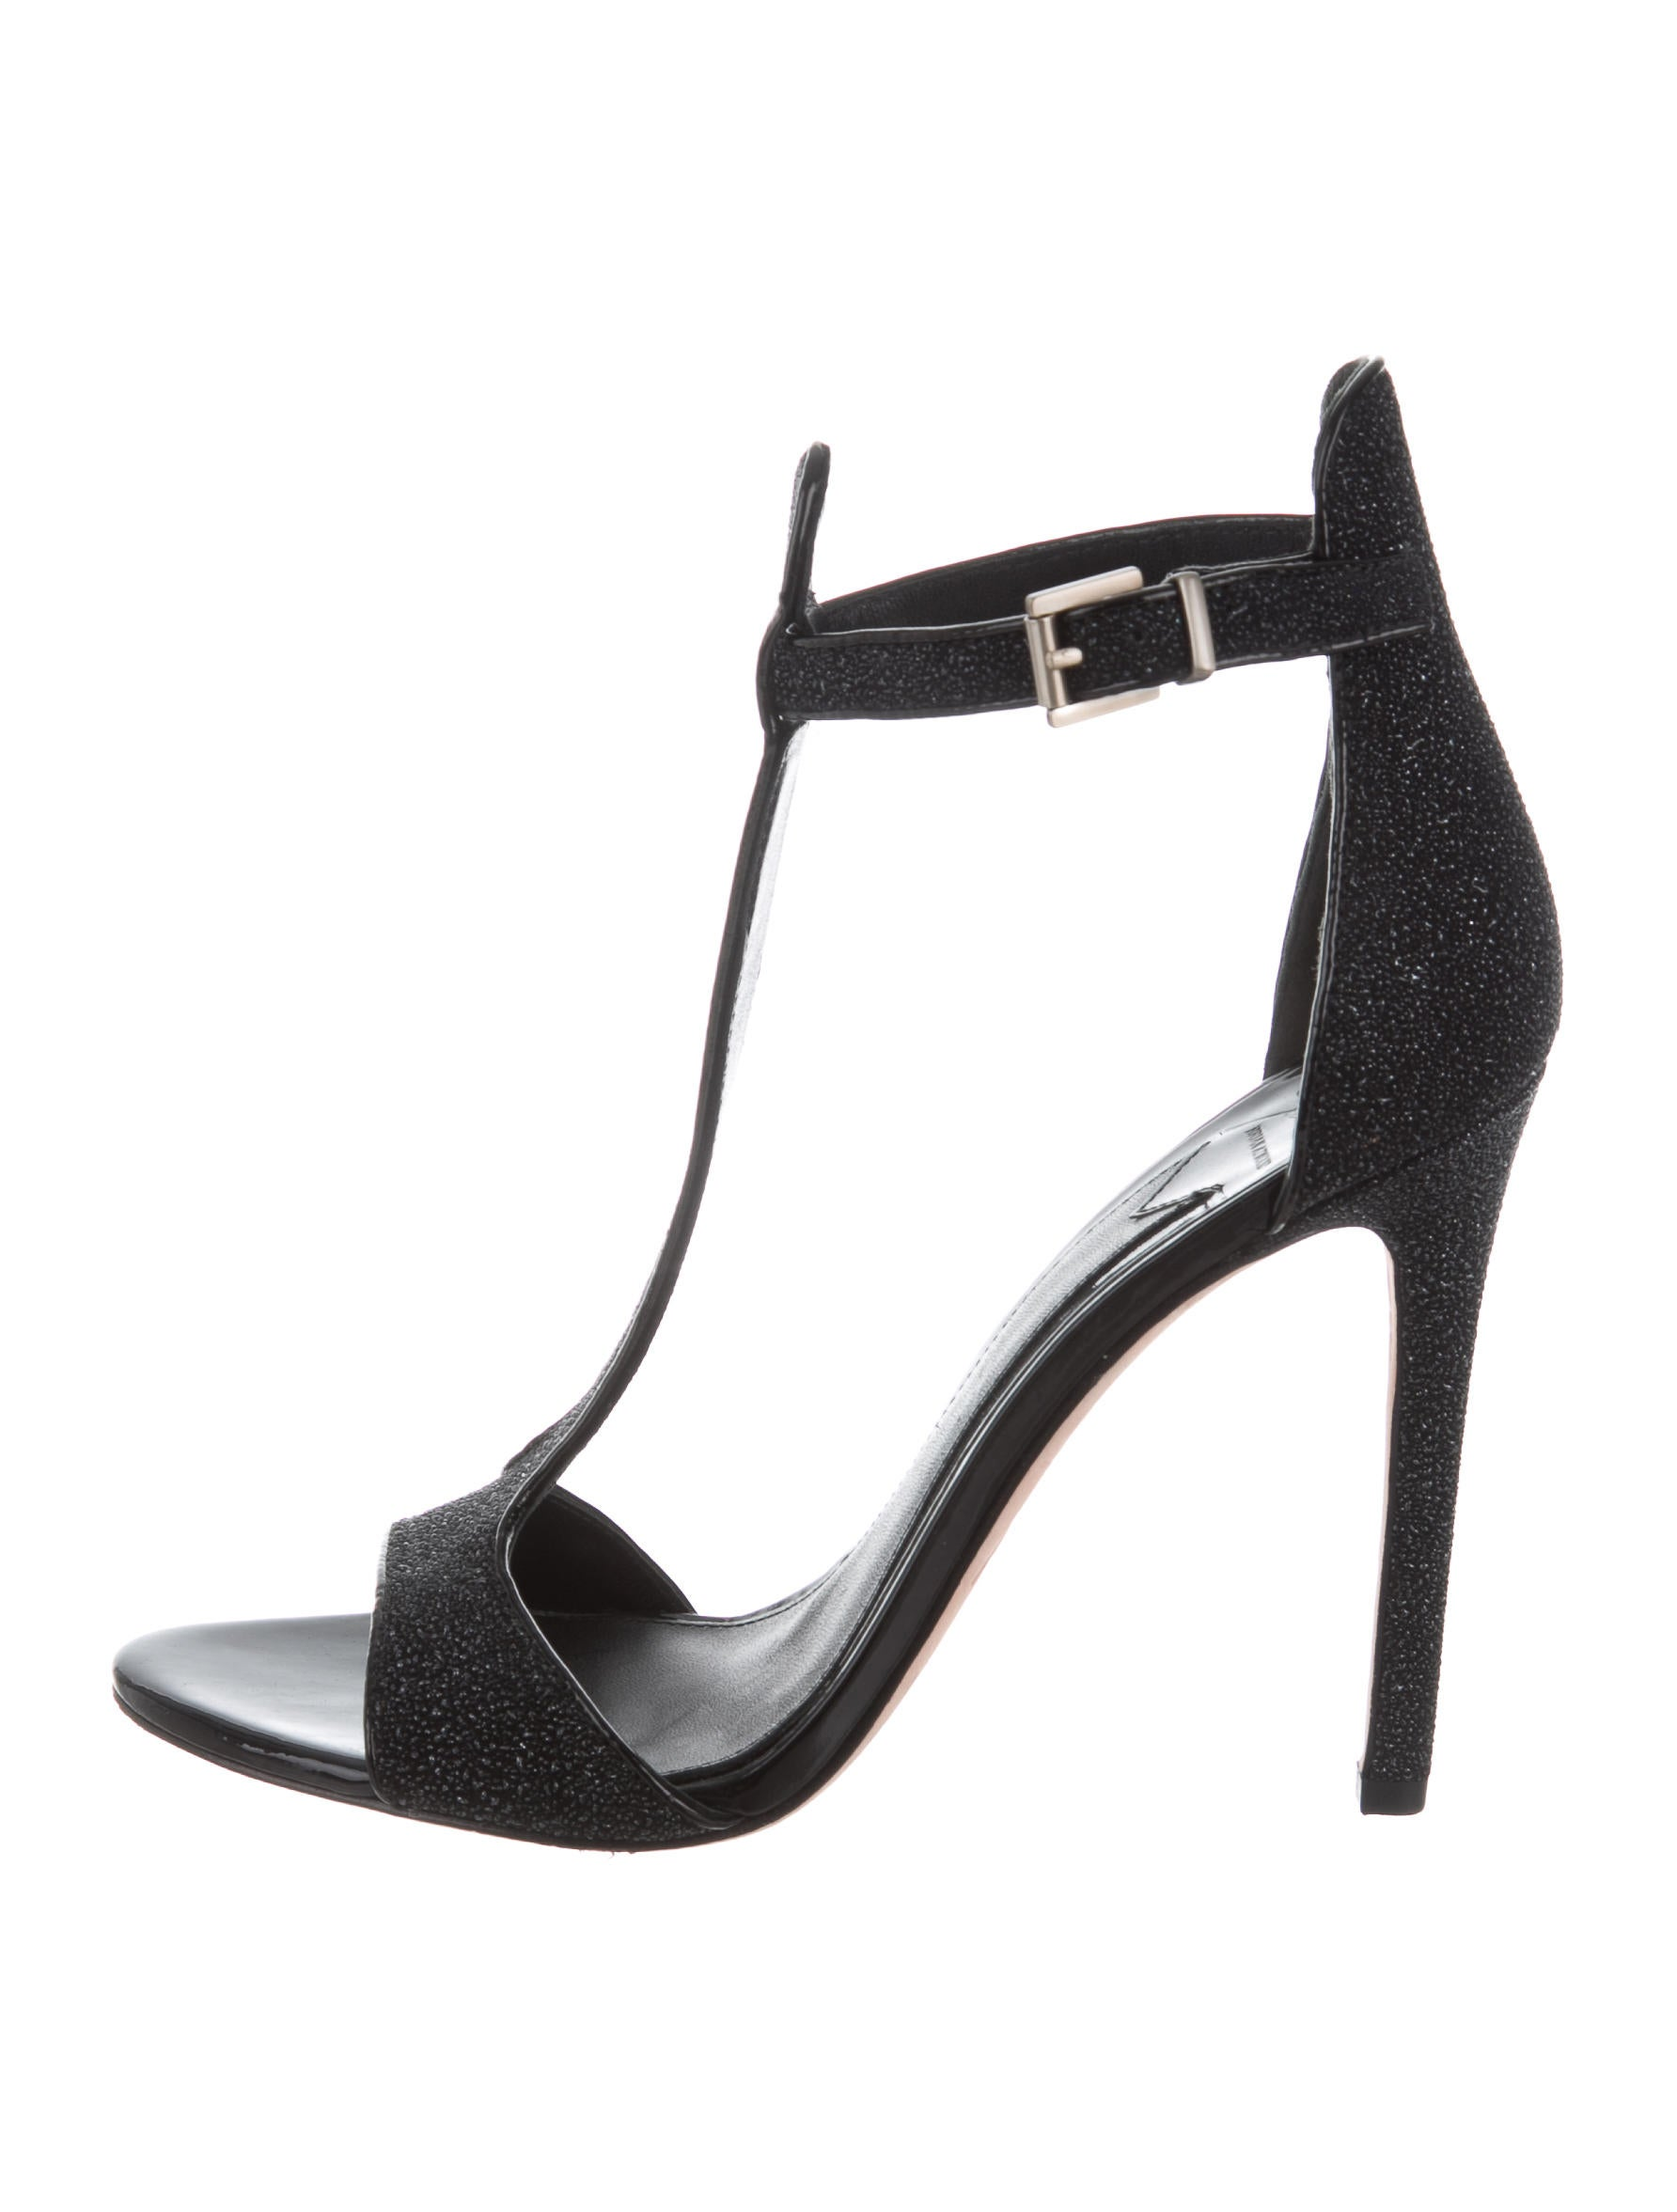 1784c622925 B Brian Atwood Leigha T-Strap Sandals - Shoes - WBN22184